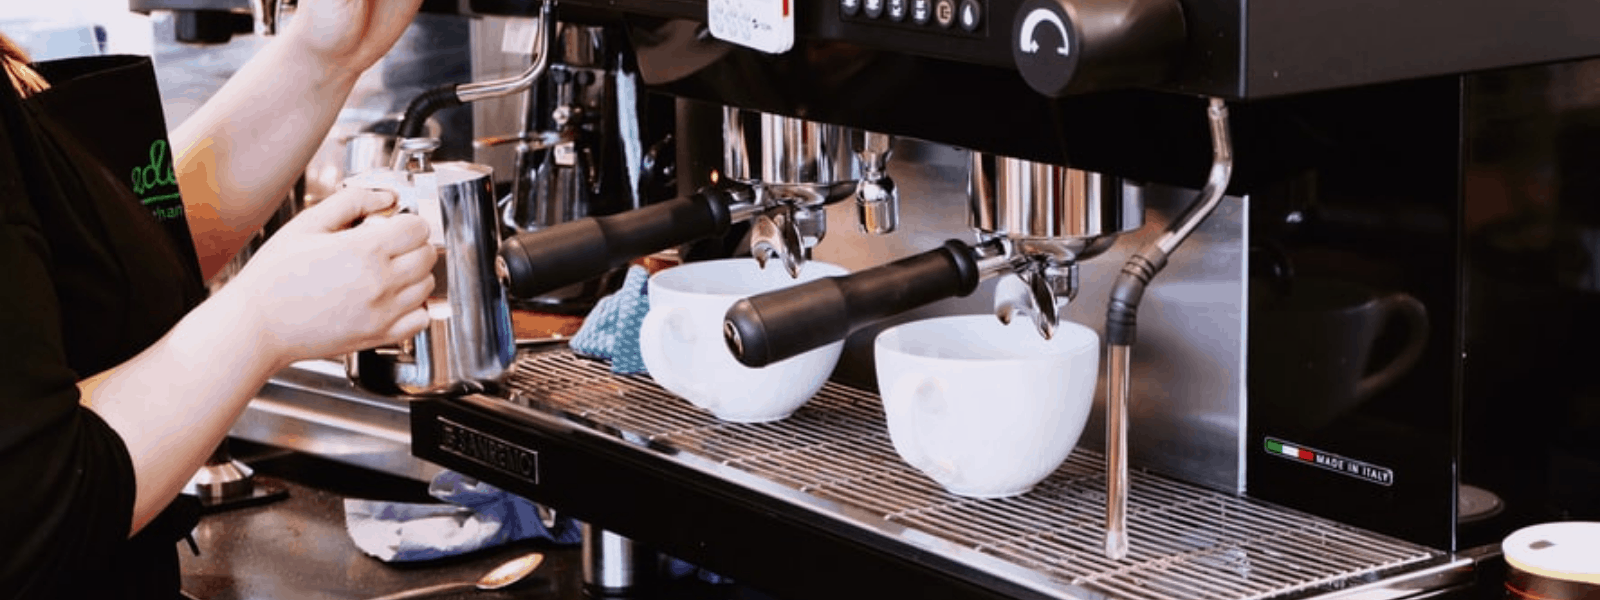 Best Non-Toxic Coffee Makers